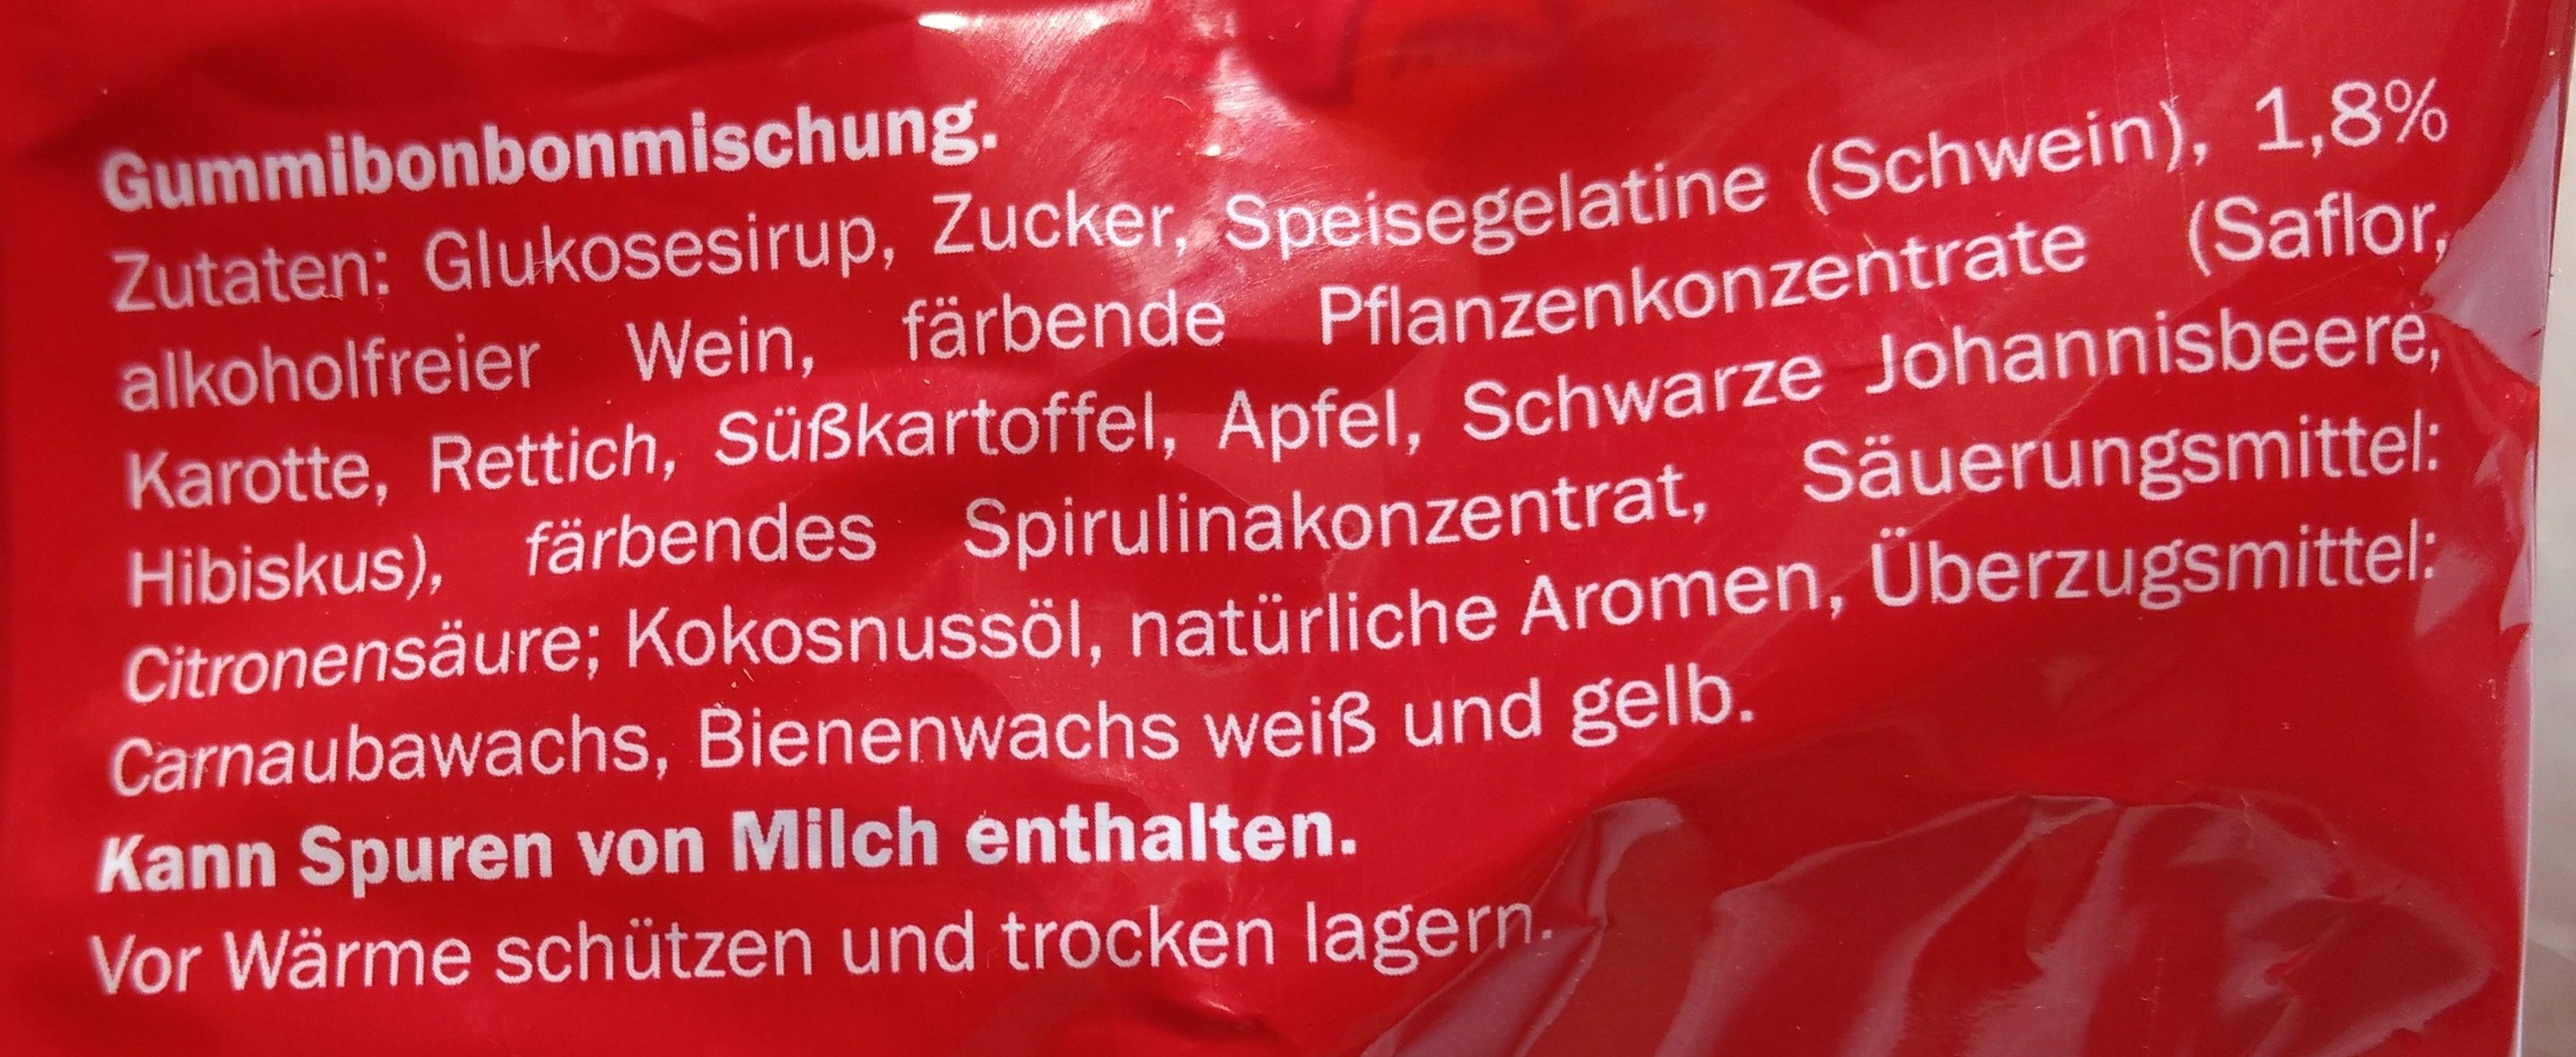 Sugarland Freche Trauben Weingummi 300g, Traubenw... - Ingredients